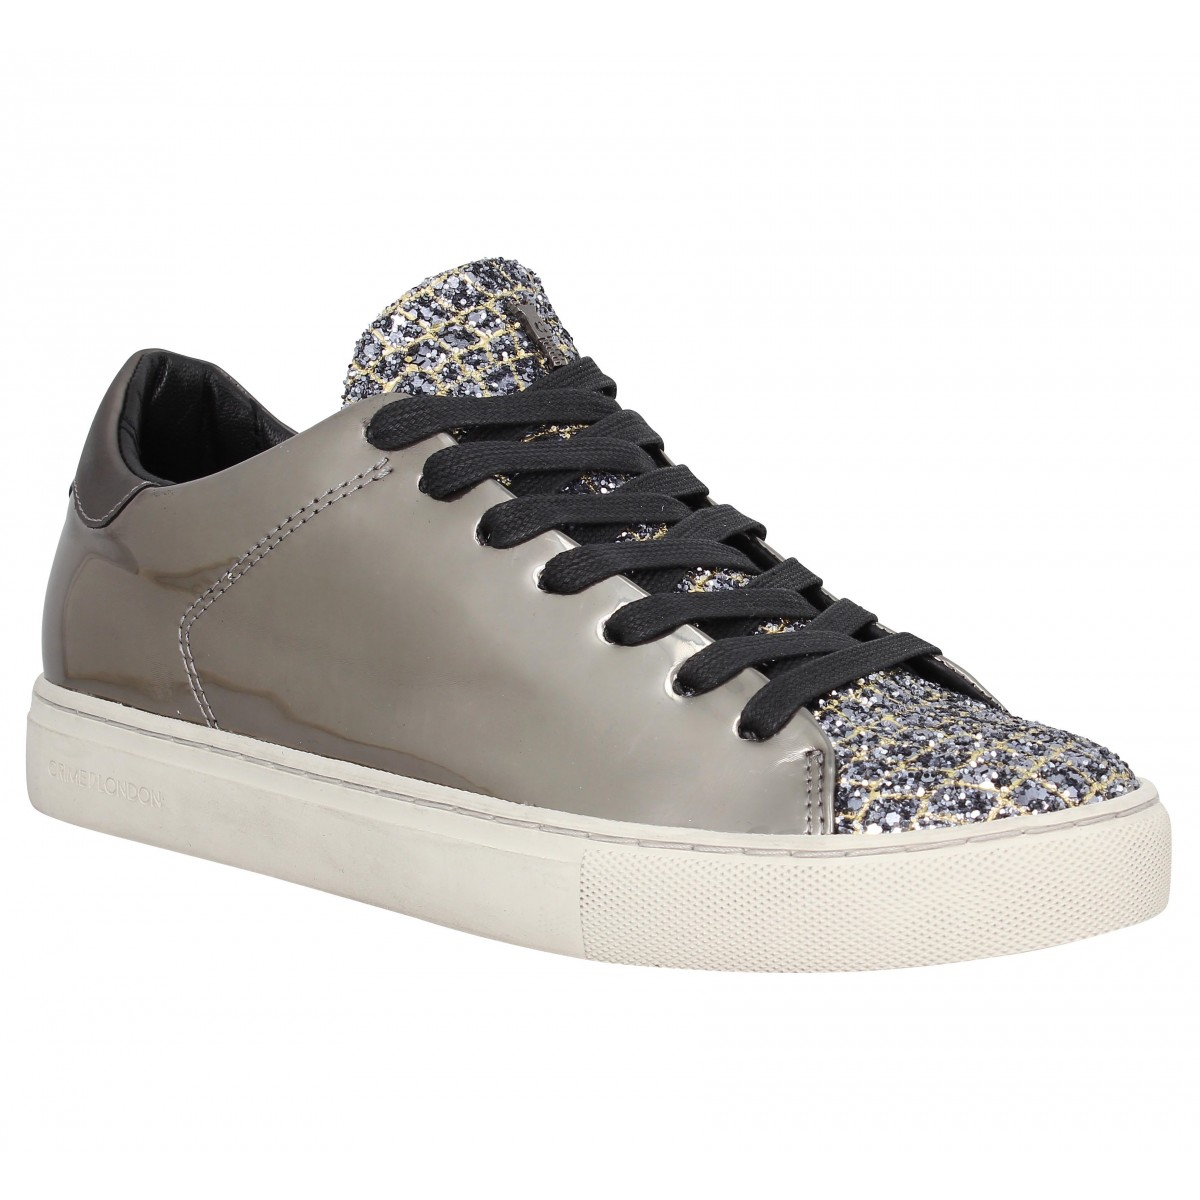 Baskets CRIME 25221 cuir Gris